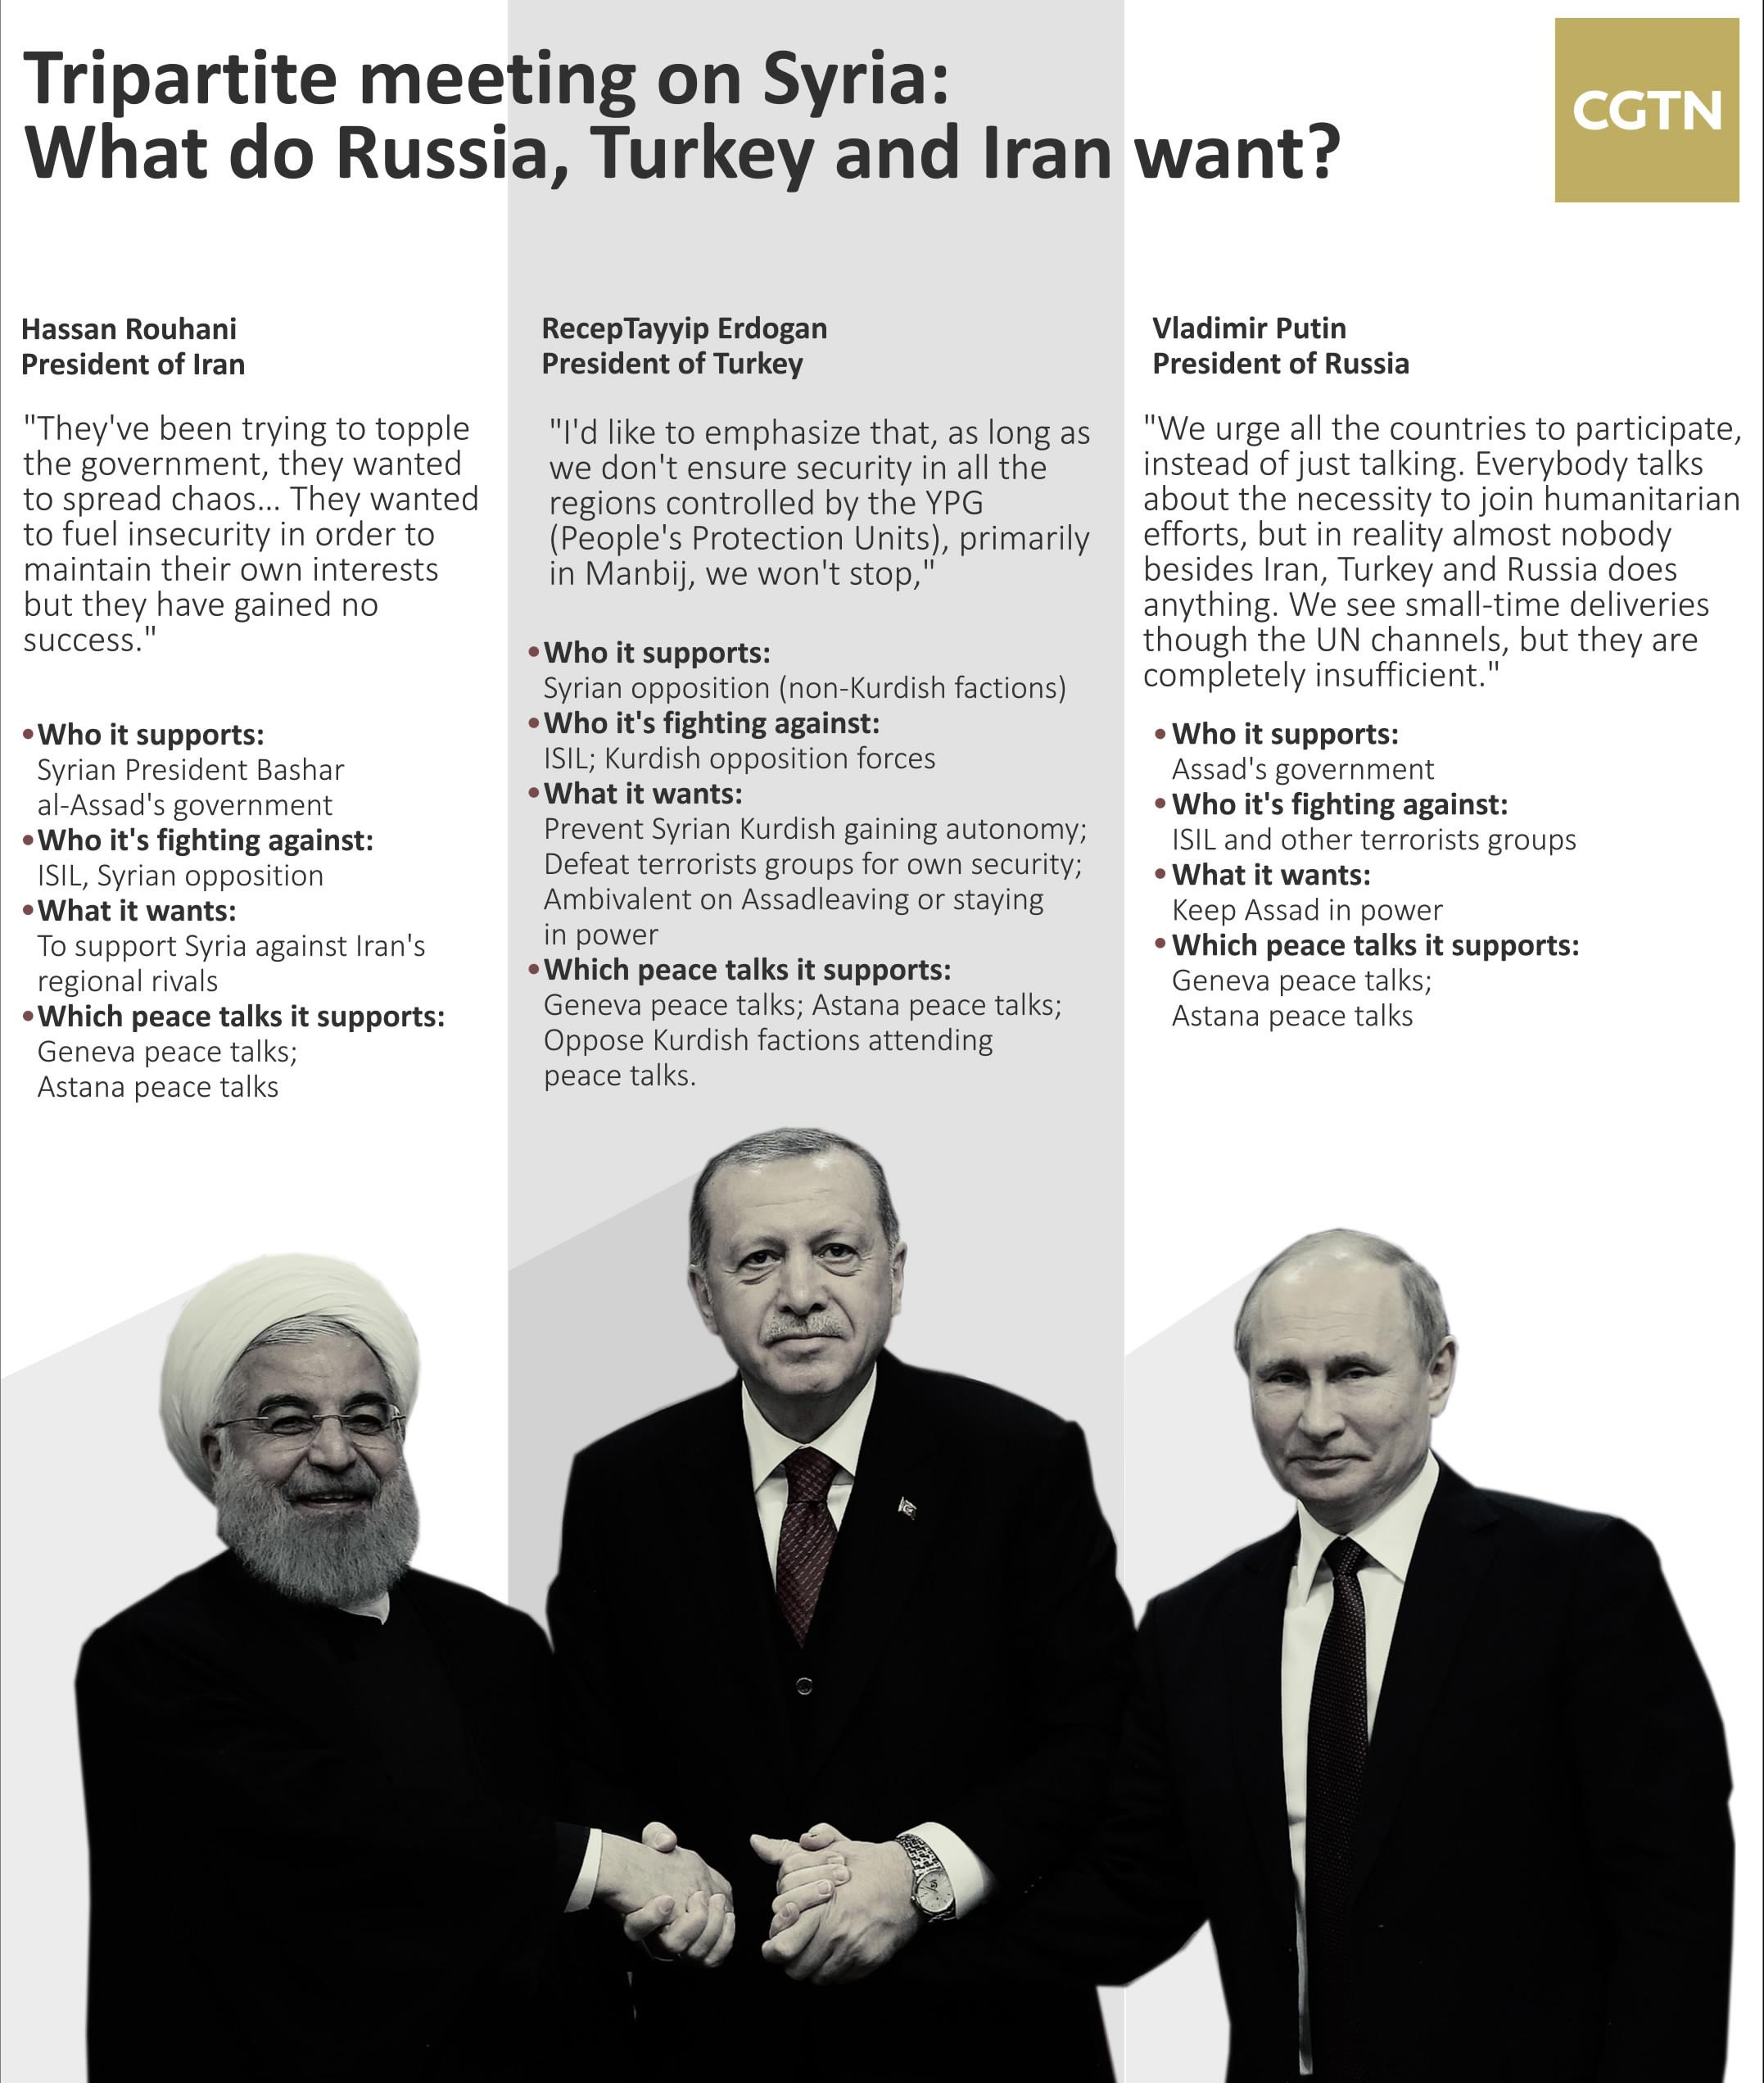 Russia Turkey Iran Seek Lasting Ceasefire In Syria Cgtn Meccanism Long Syiria The Joint Statement Said Three Countries Will Continue Their Active Cooperation On For Achievement Of A Between